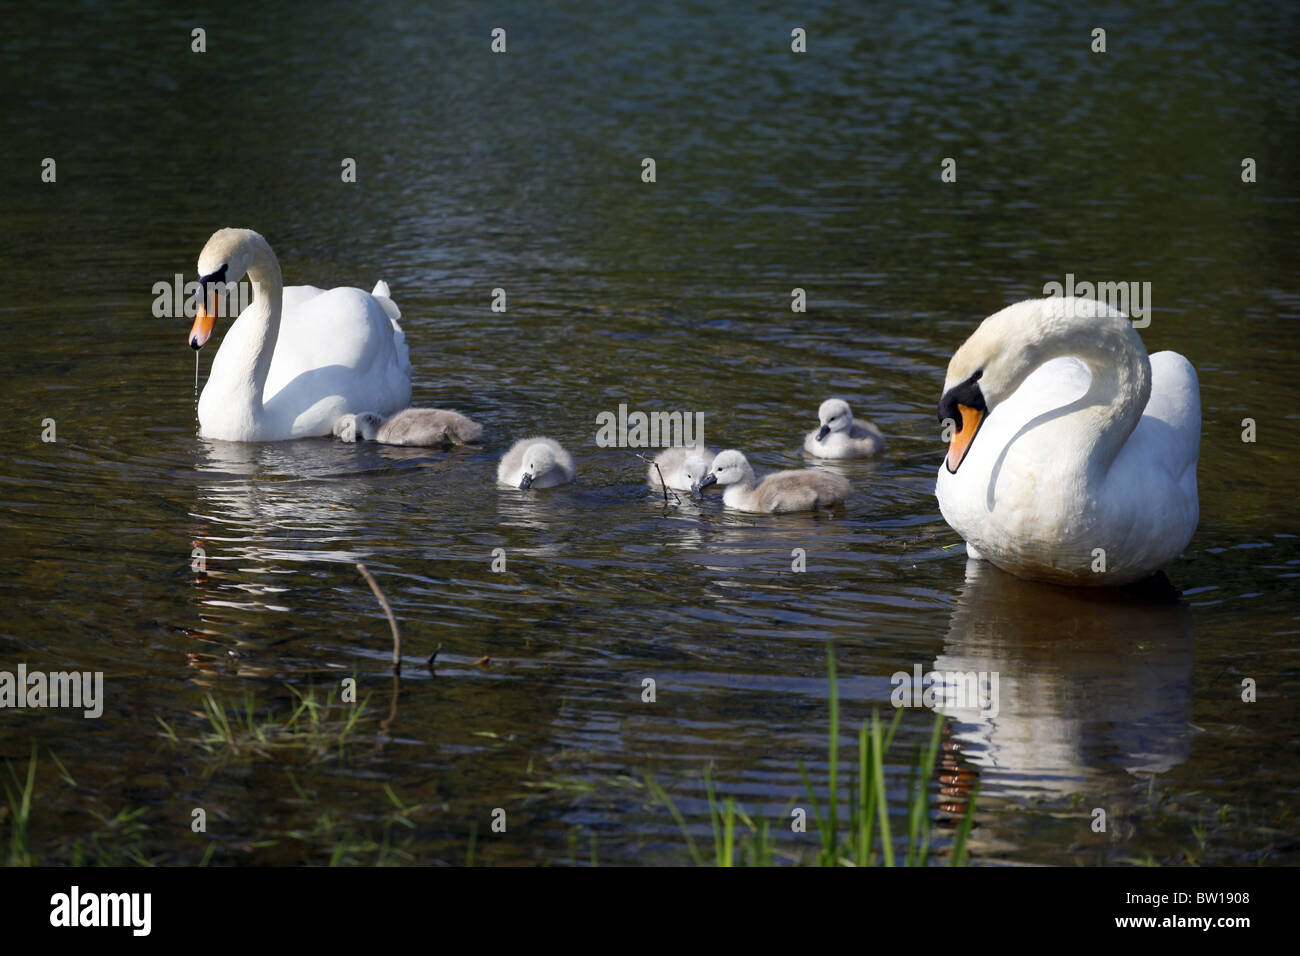 SWAN CYGNETS CASTLE HOWARD NORTH YORKSHIRE ENGLAND MALTON NORTH YORKSHIRE ENGLAND CASTLE HOWARD NORTH YORKSHIRE Stock Photo